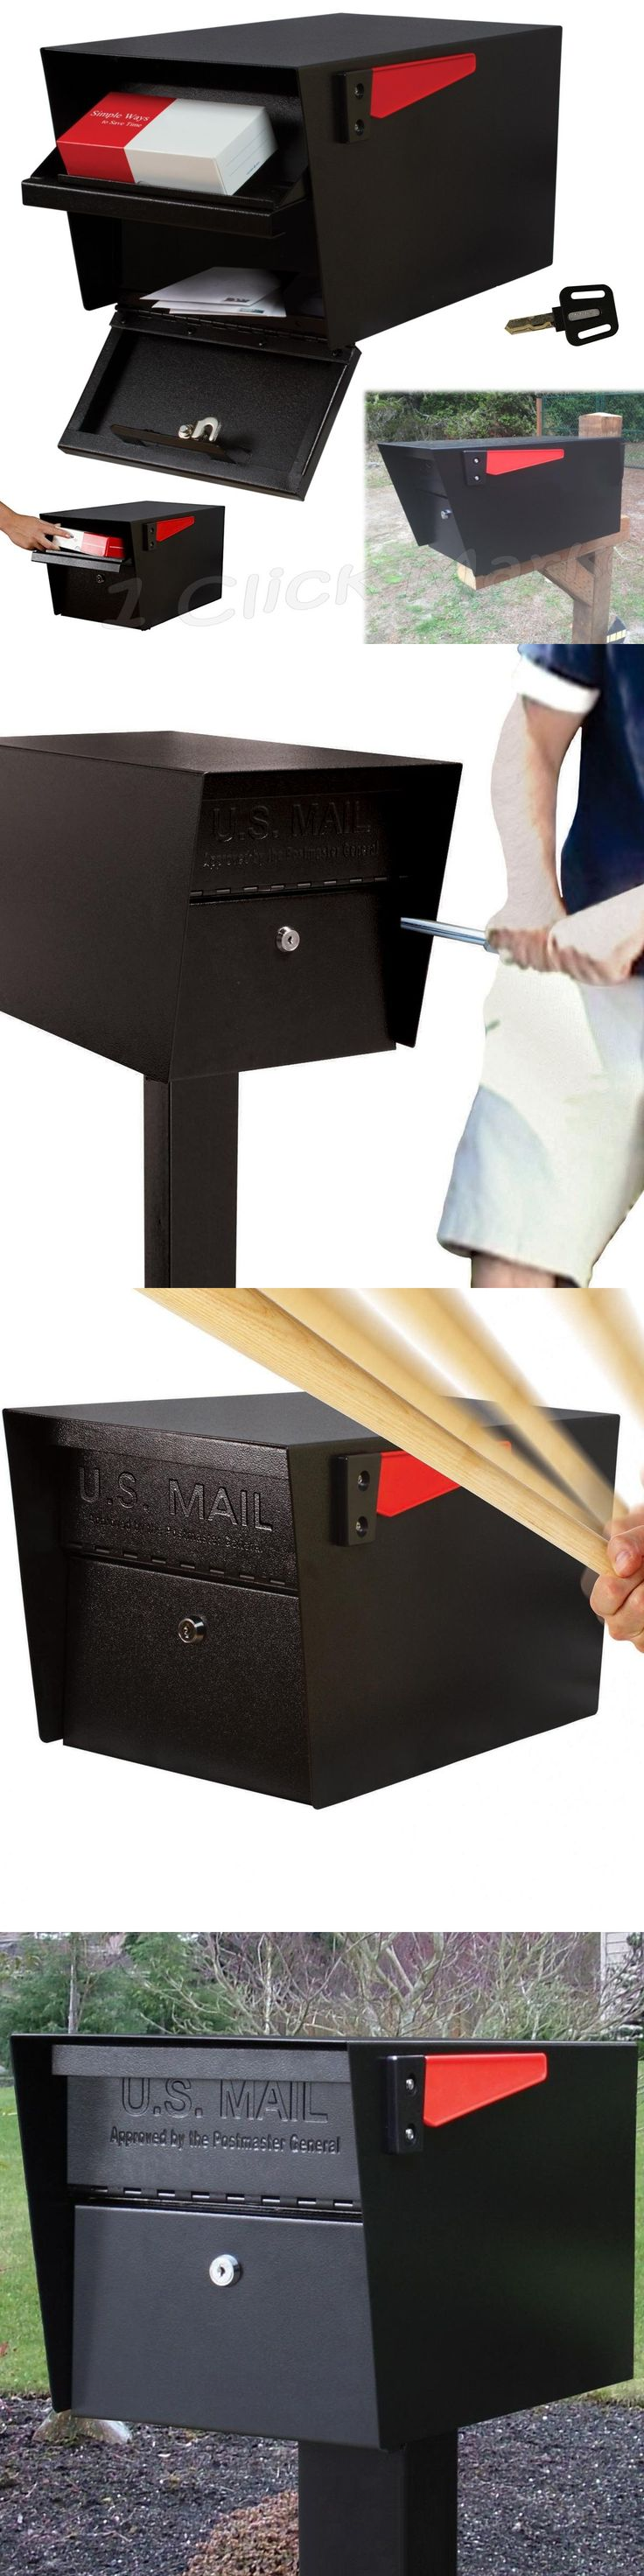 Mailbox stainless steel locking mail box letterbox postal box modern - Mailboxes And Slots 20599 Large Rural Mailbox Street Roadside Oversize Black Lock Mail Box Parcel